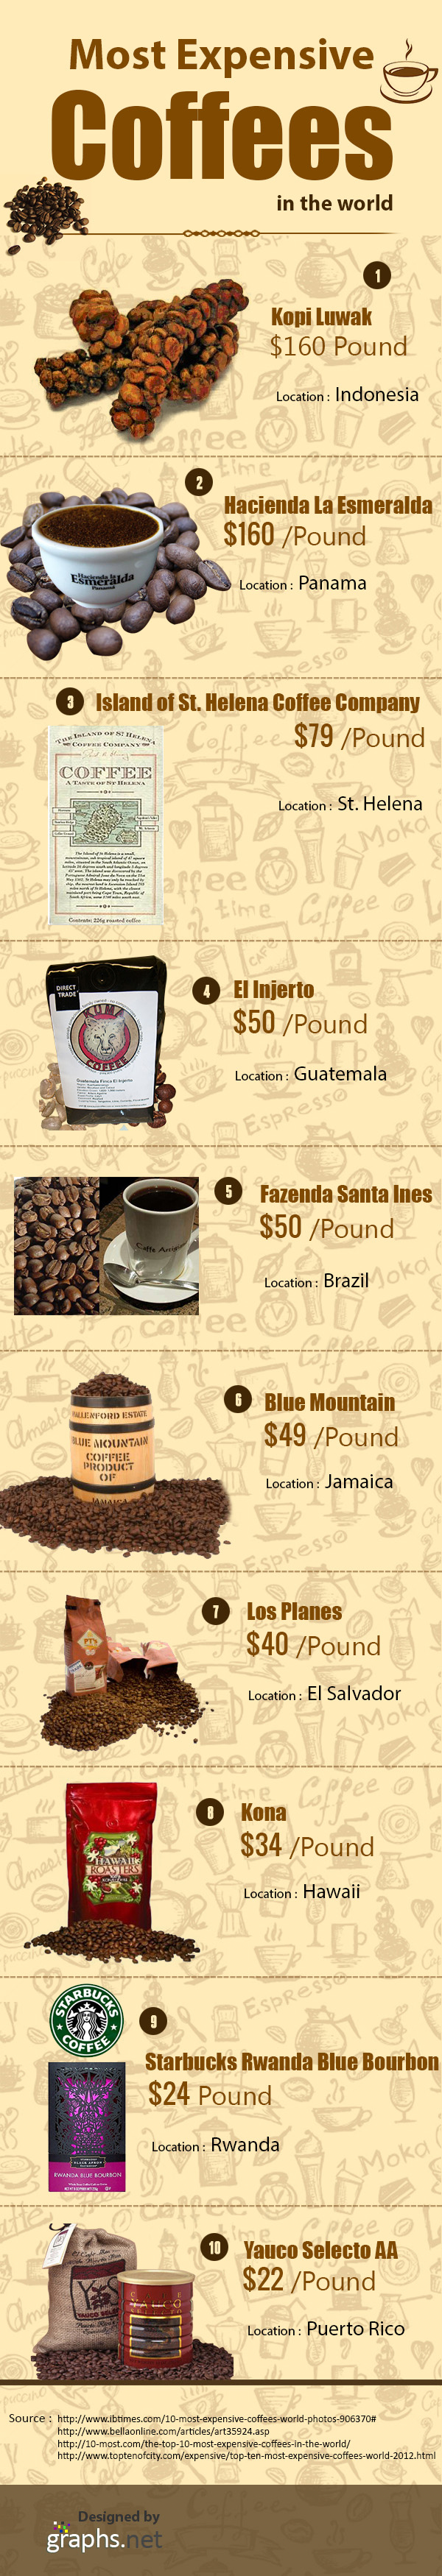 Most Expensive Coffees in the World